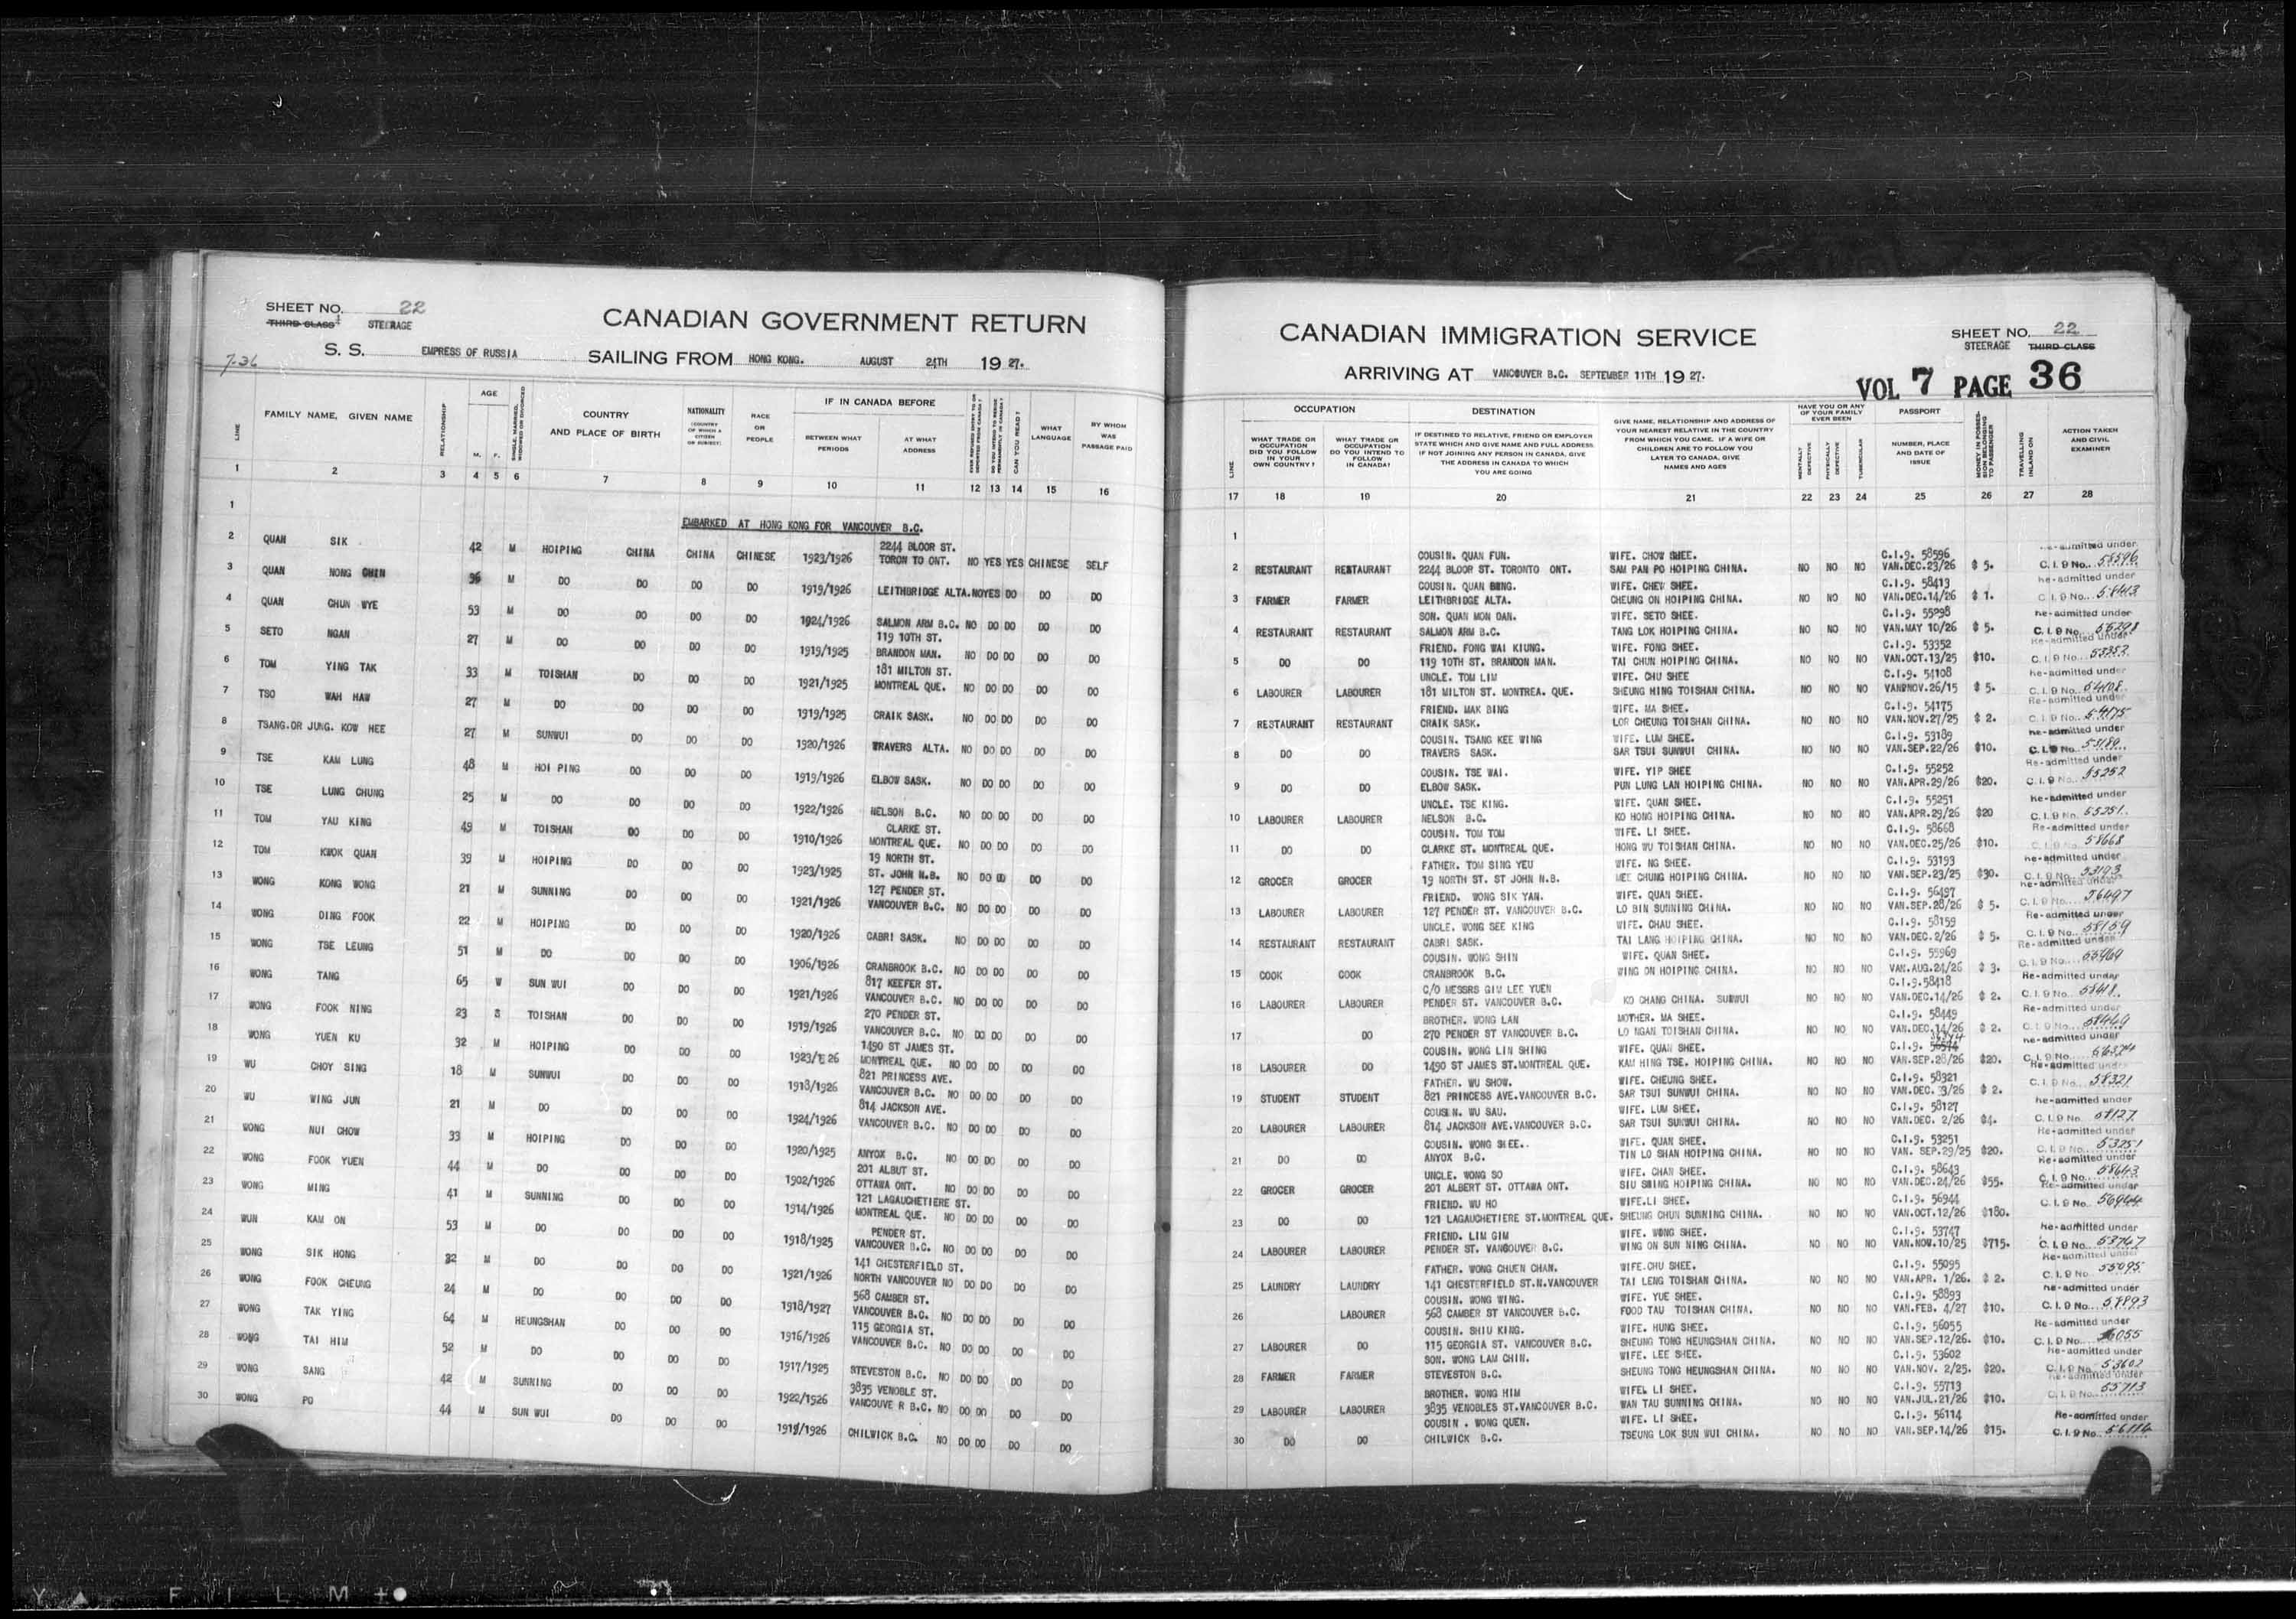 Title: Passenger Lists: Vancouver and Victoria (1925-1935) - Mikan Number: 161347 - Microform: t-14889